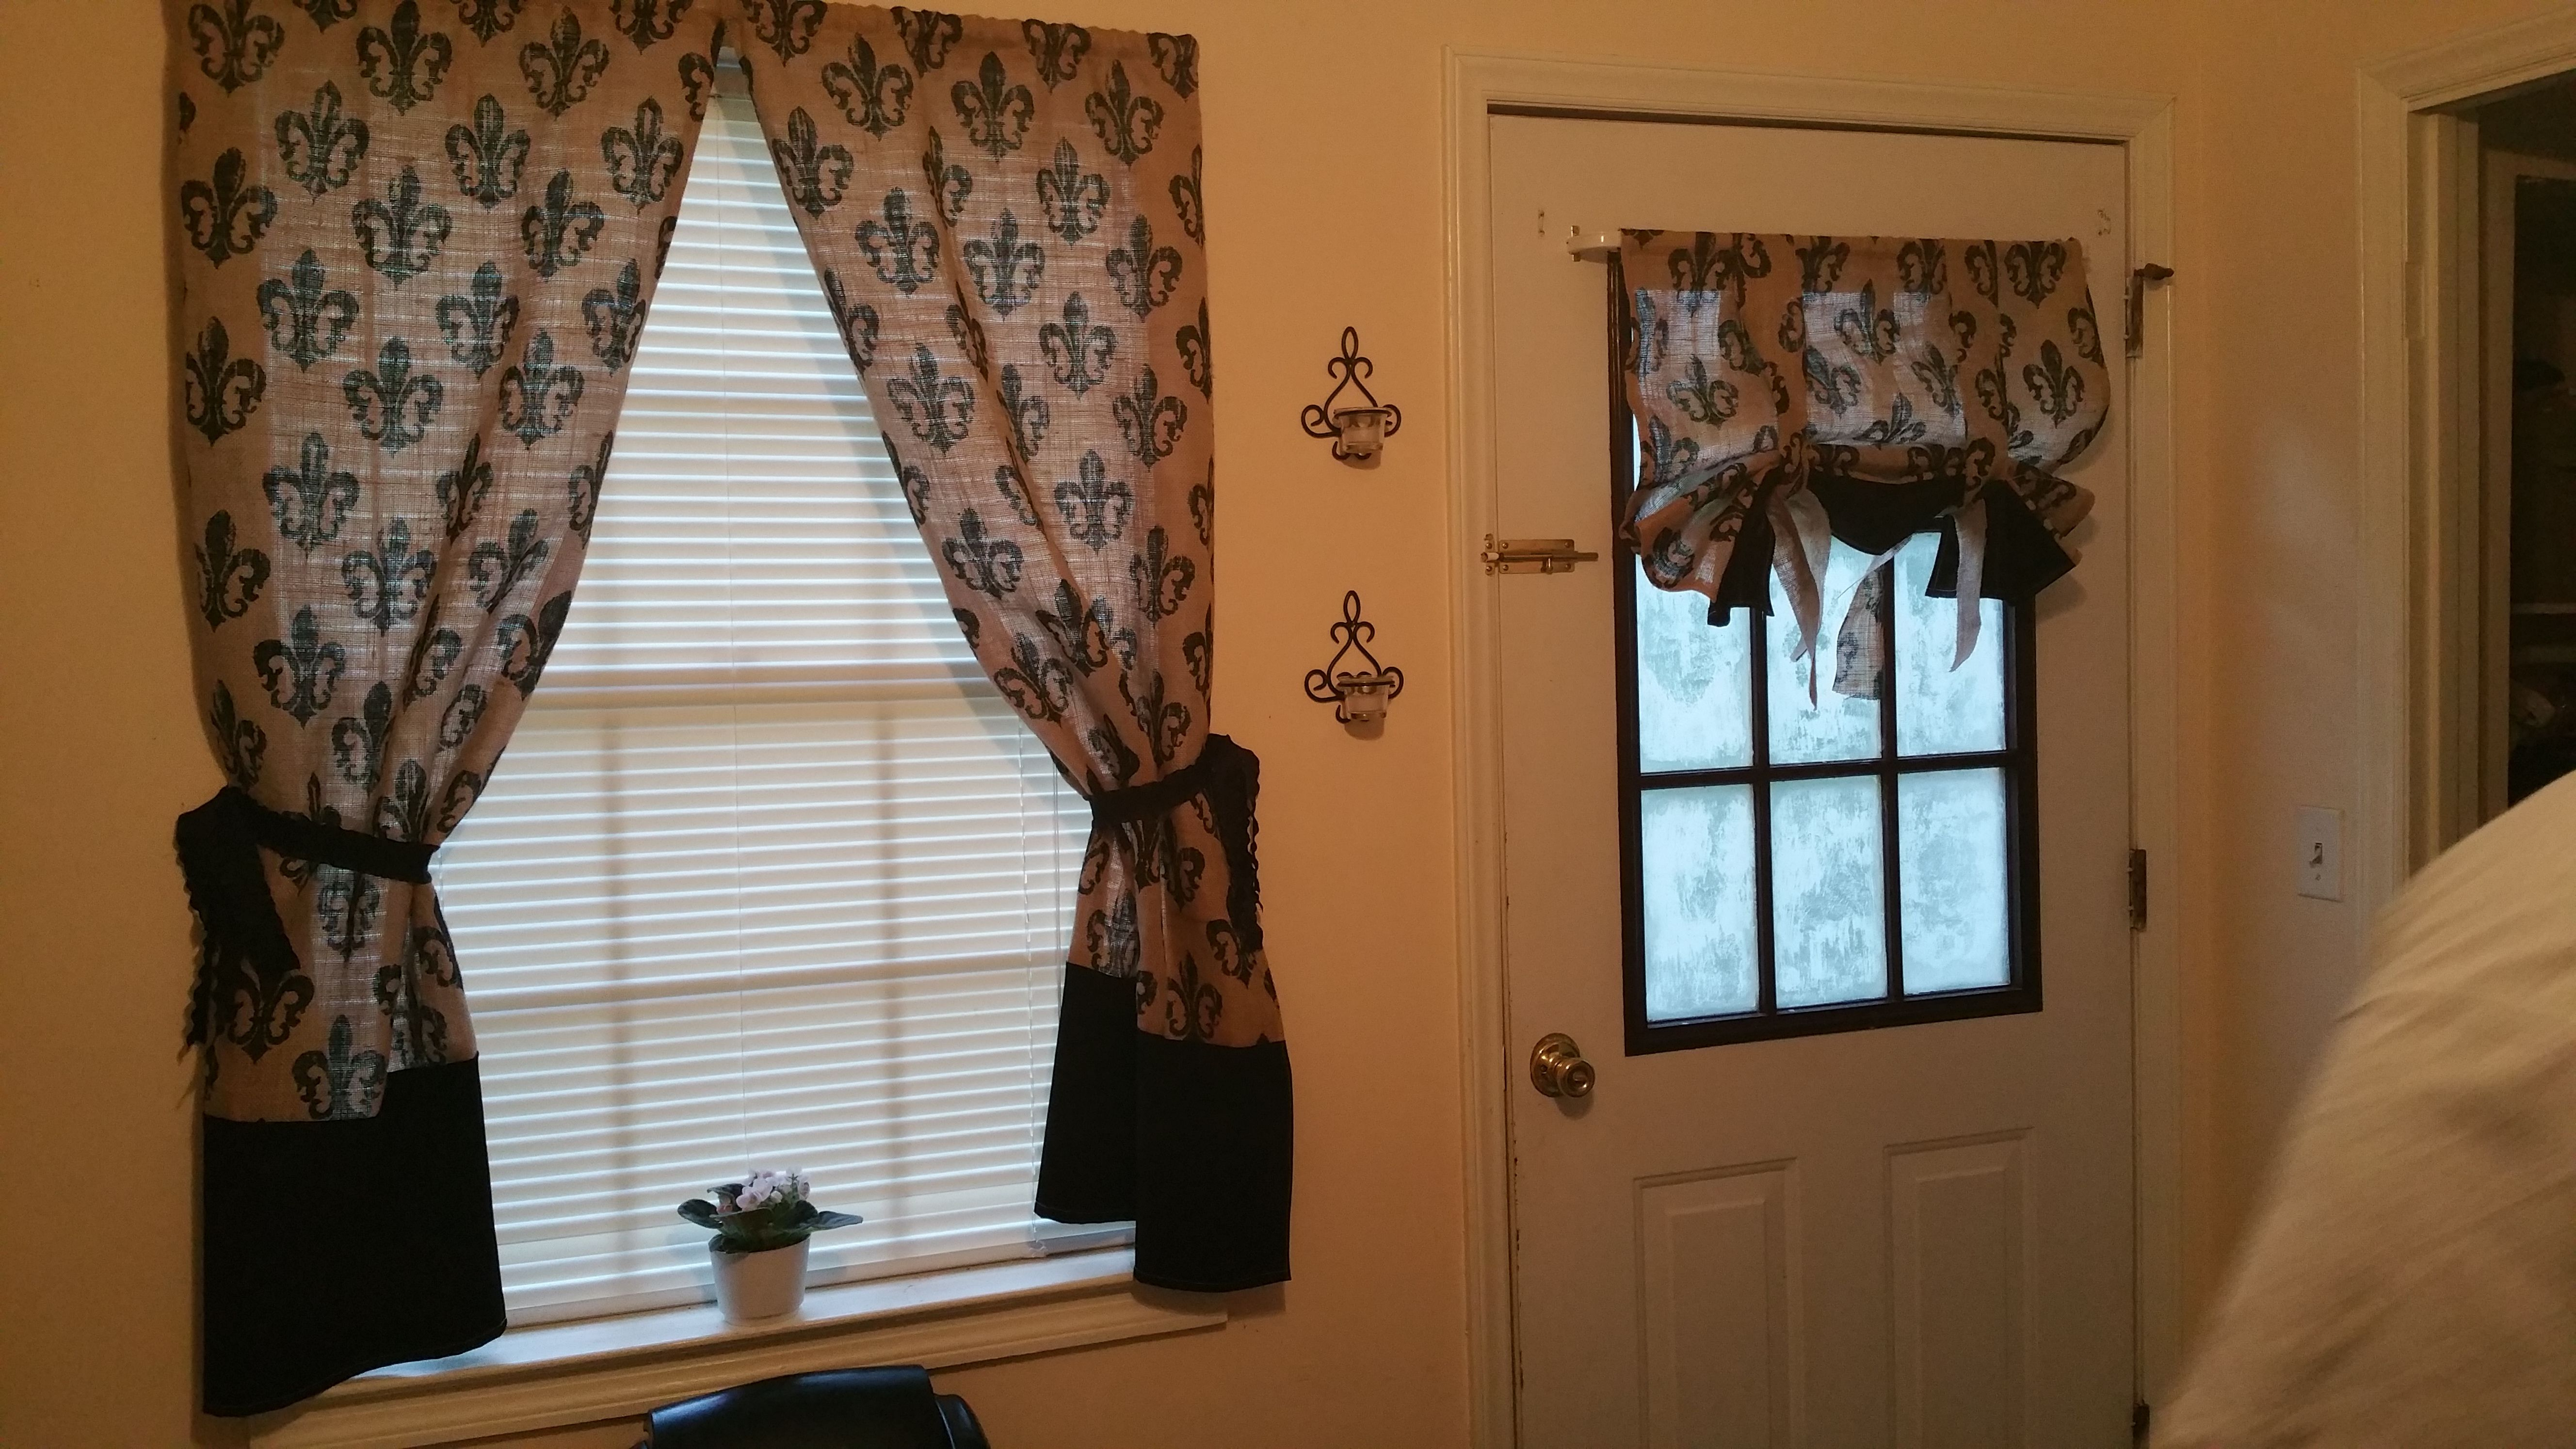 Diy burlap kitchen curtains almost finished just need to add some black ribbon to hold